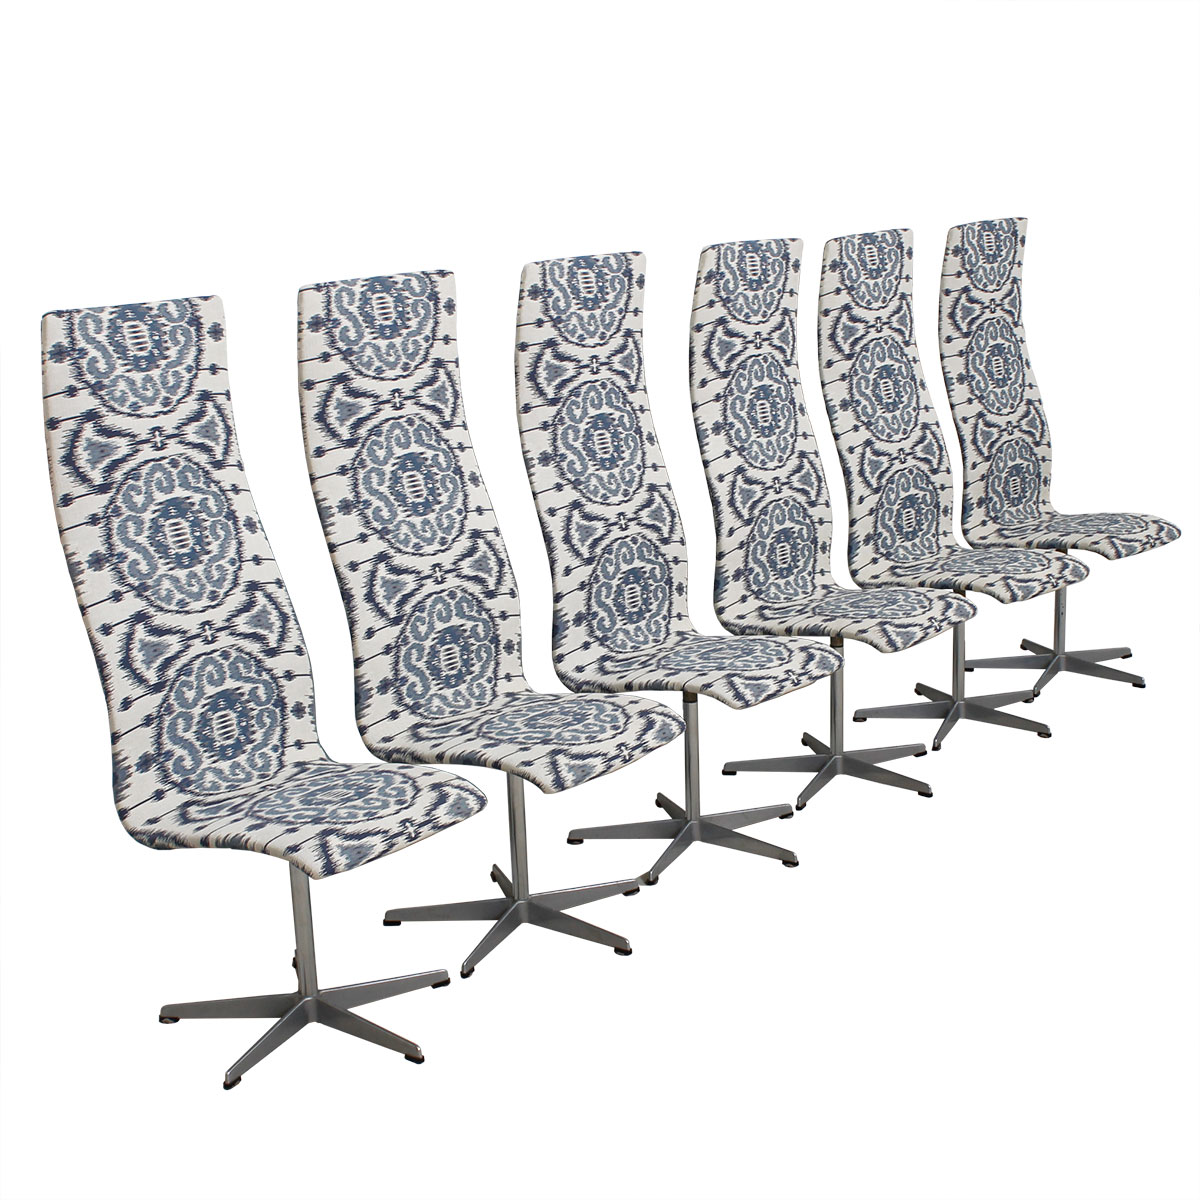 Set of 6 Fritz Hansen Oxford Chairs with New Blue & White Ikat Upholstery